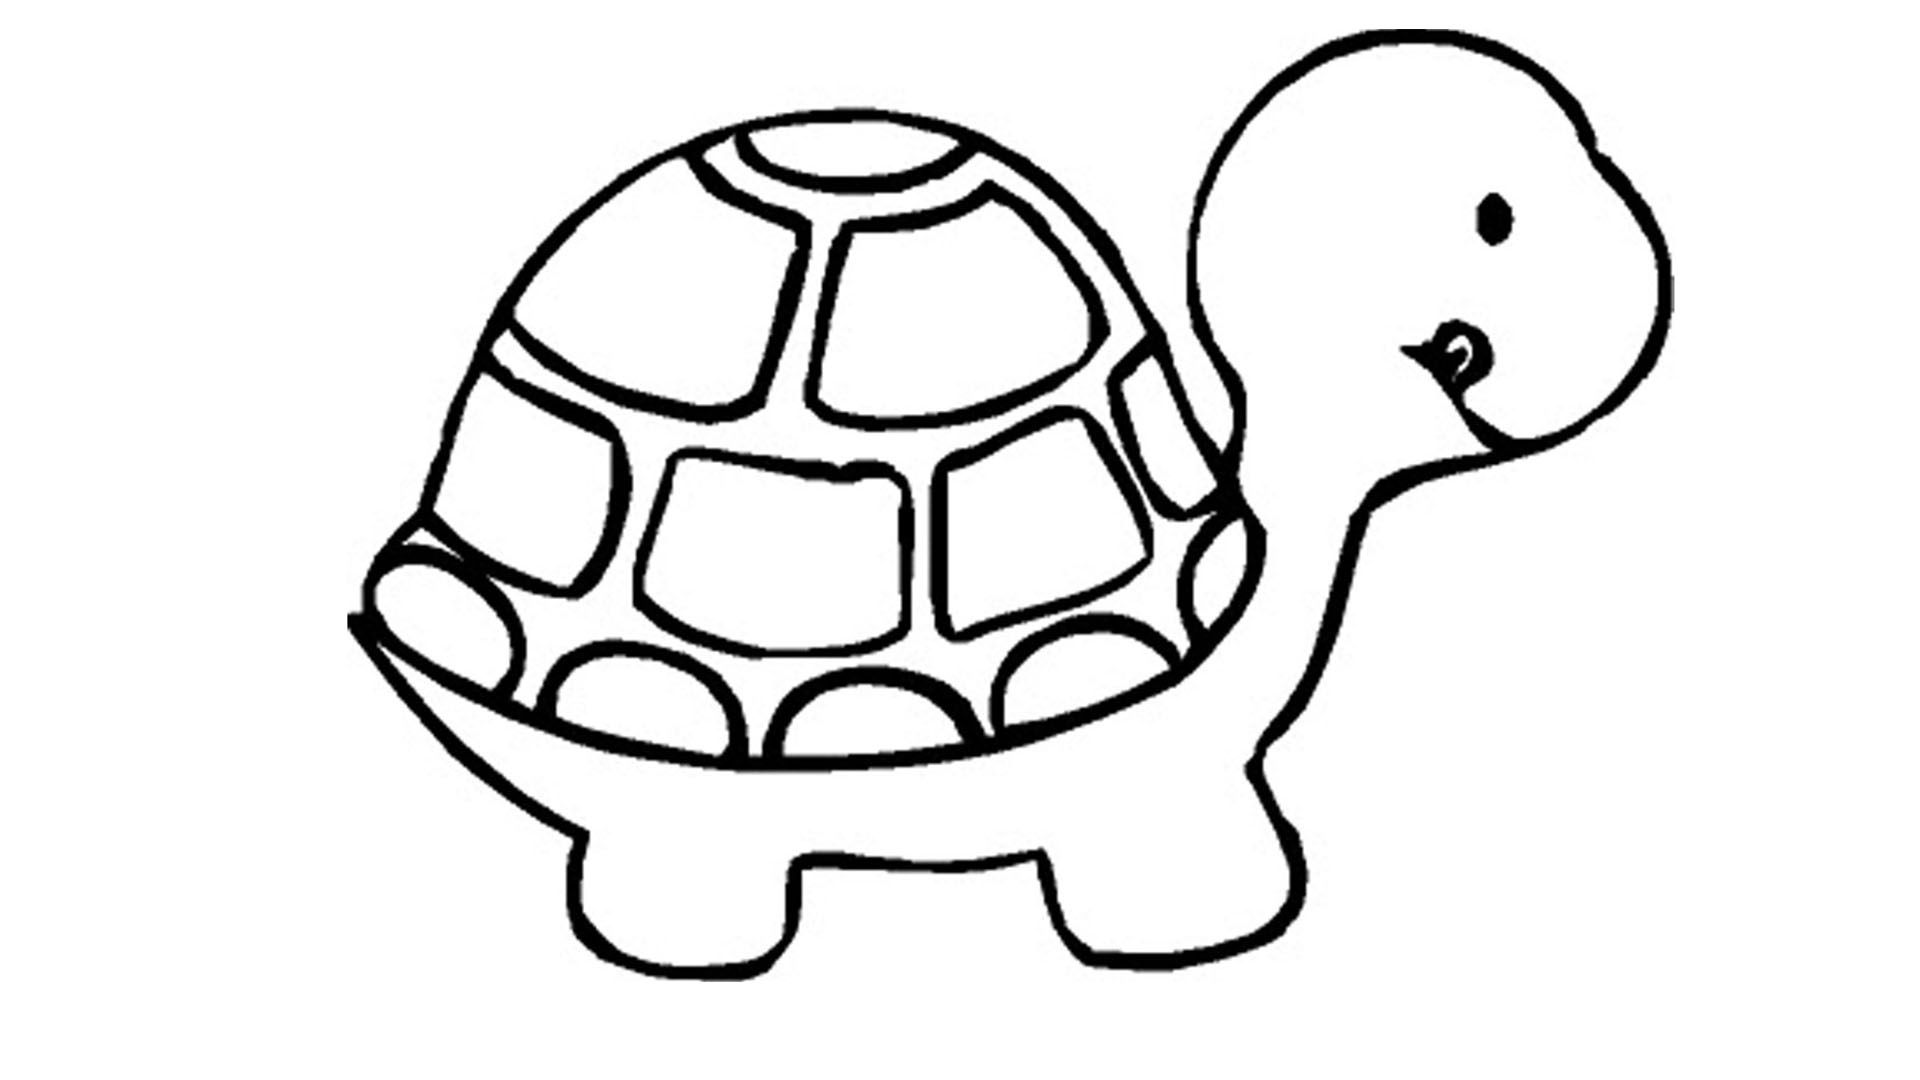 Coloring pages hd - Turtle Coloring Pages Wallpapers Pictures